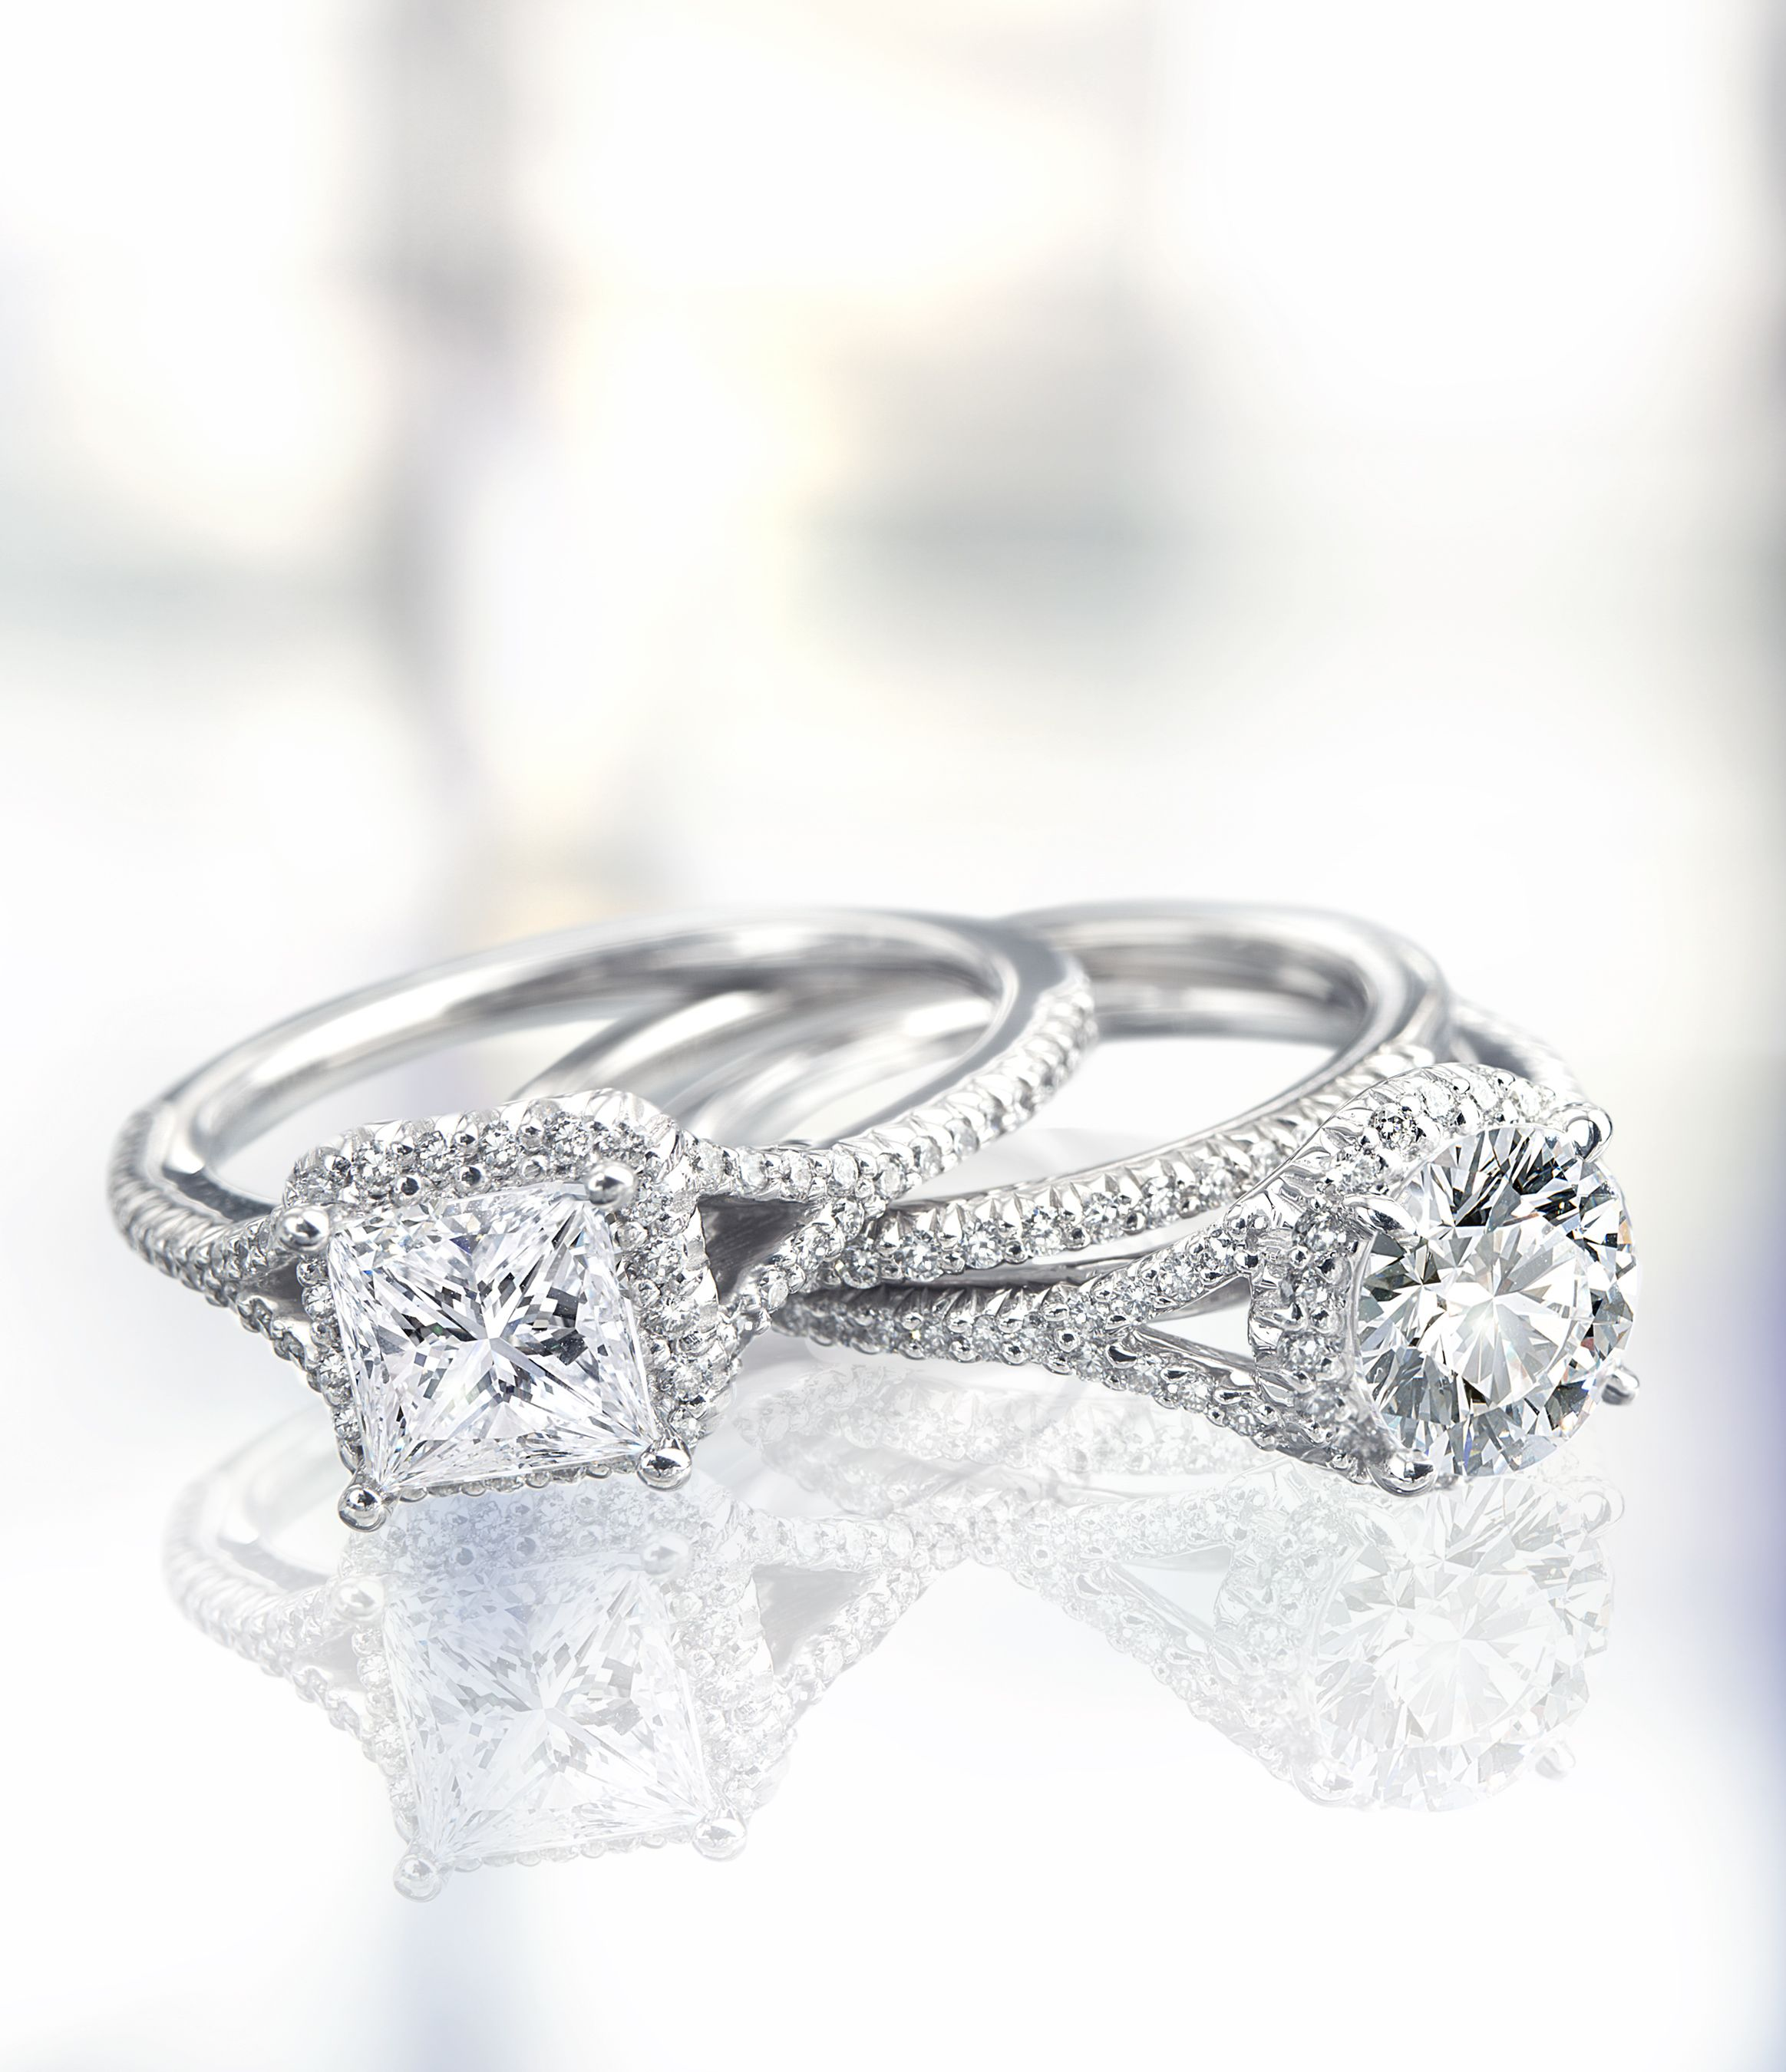 handcrafted custom engagement rings by ritani. experience a free in